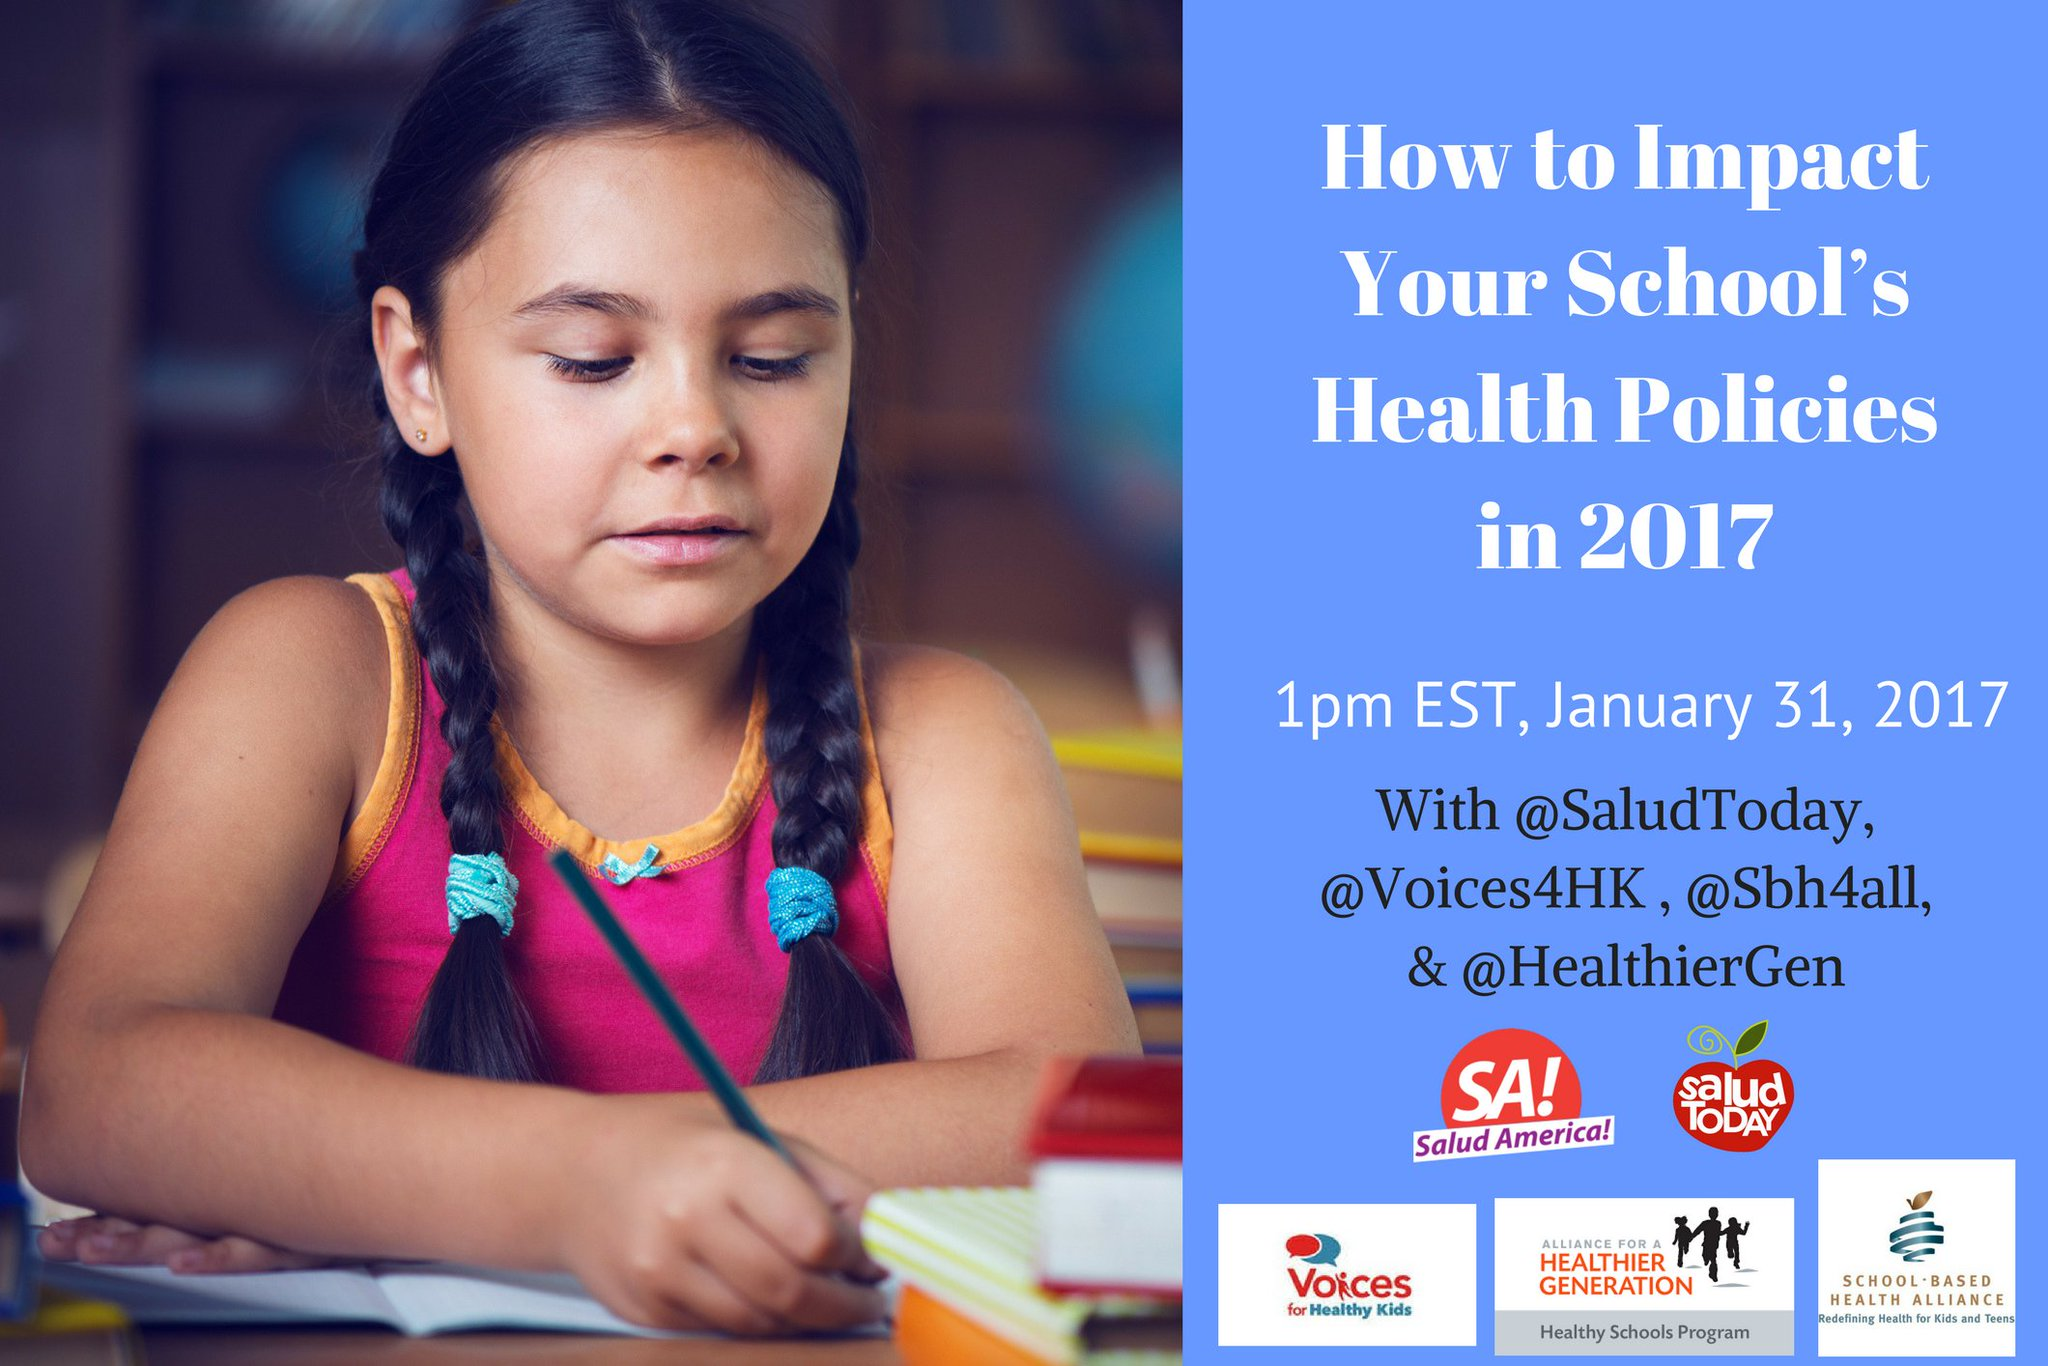 Thumbnail for How to Impact Your School's Health Policies in 2017